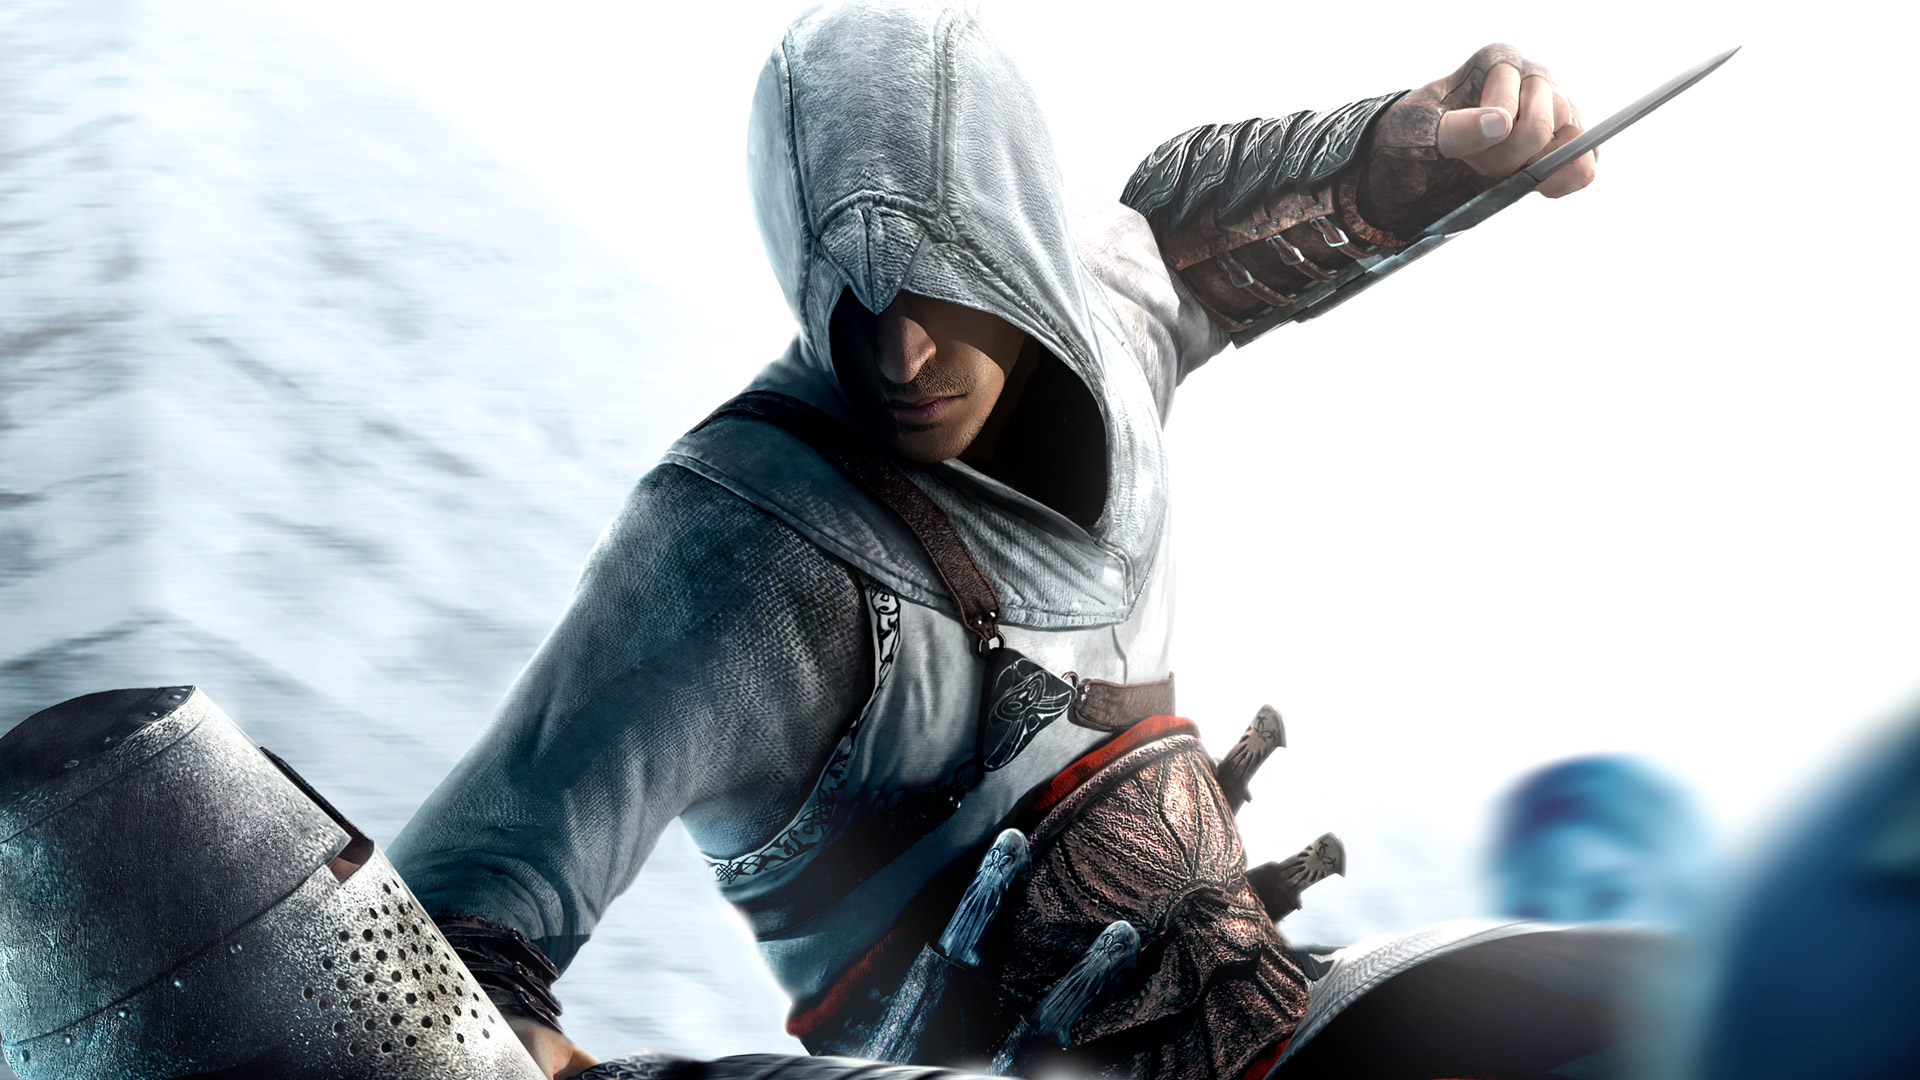 Assassins Creed   Your Time Is Now Wallpapers 1920x1080